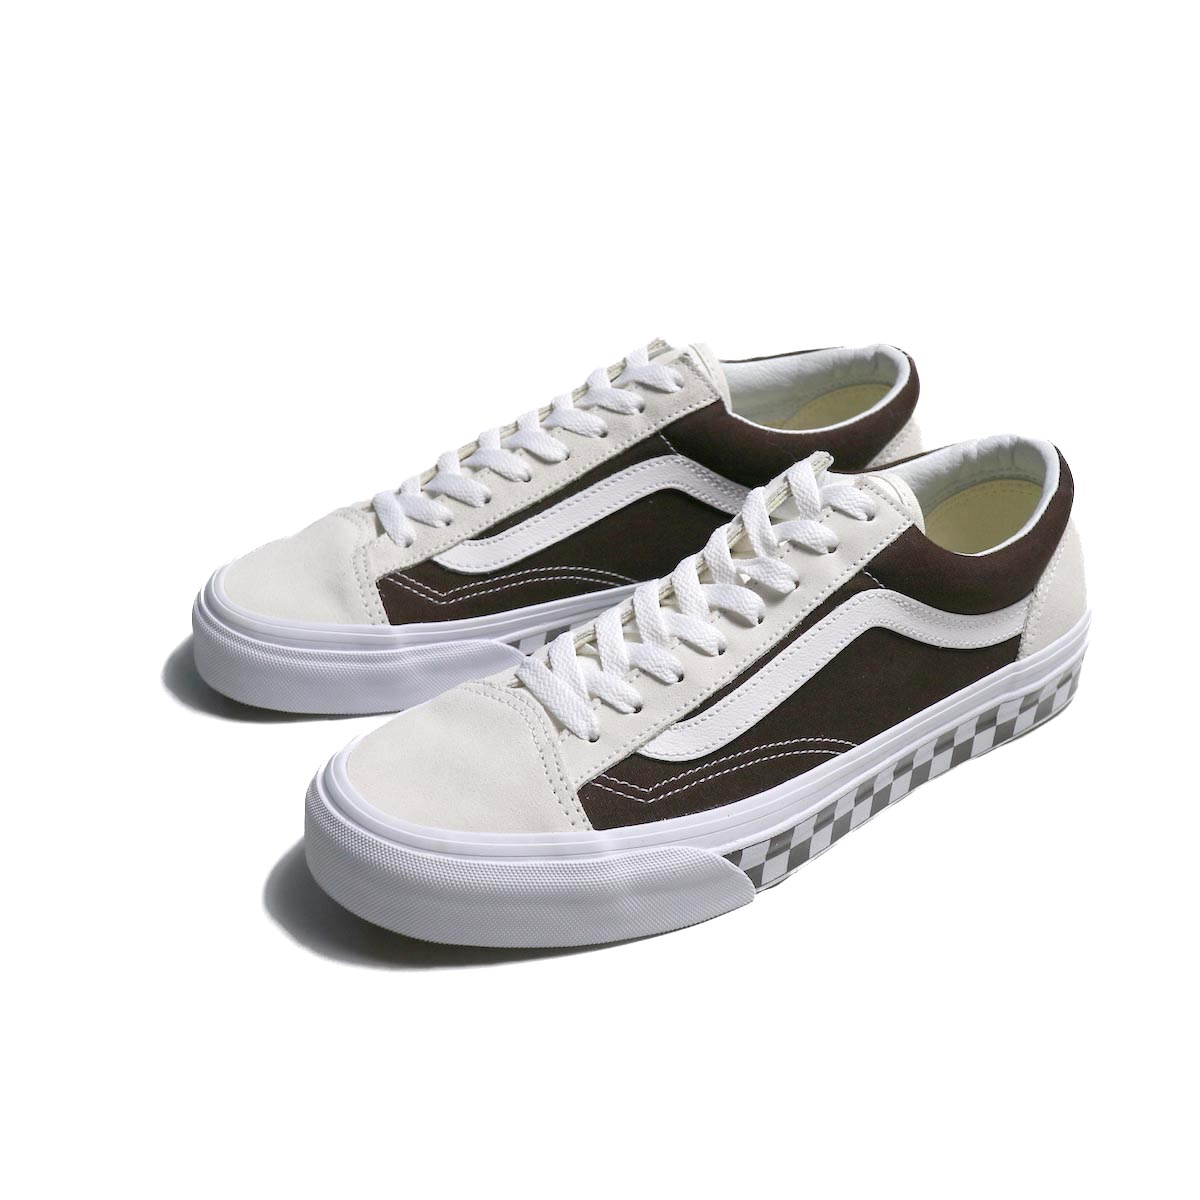 VANS / OLD SKOOL BMX CHECKERBOARD -WHITE / DEMITASSE